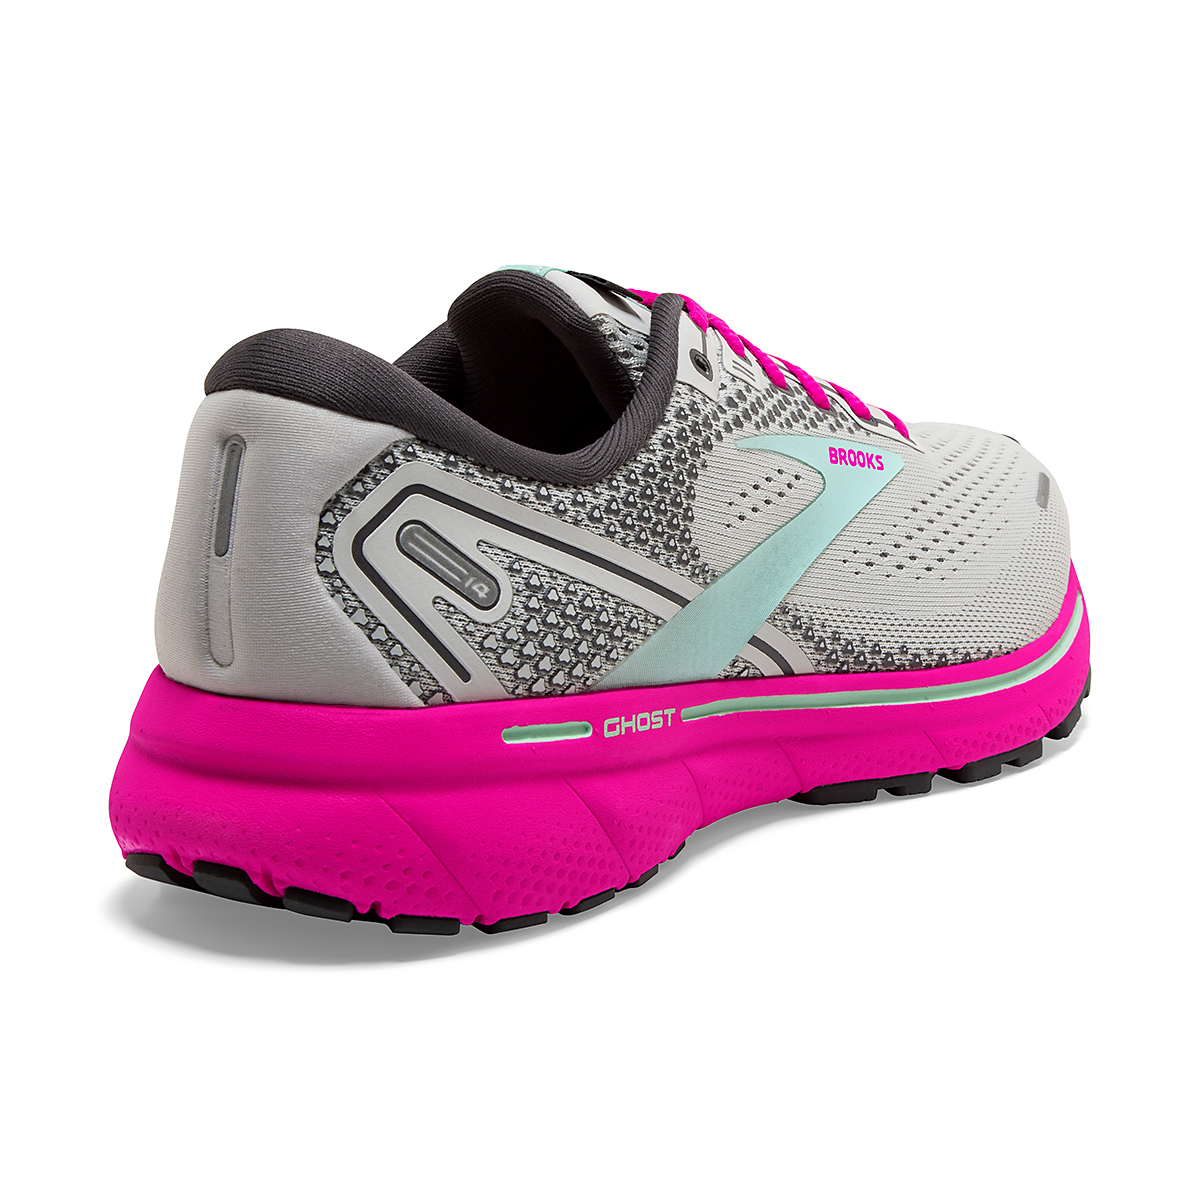 Women's Brooks Ghost 14 Running Shoe - Color: Oyster/Yucca/Pink - Size: 5 - Width: Regular, Oyster/Yucca/Pink, large, image 3